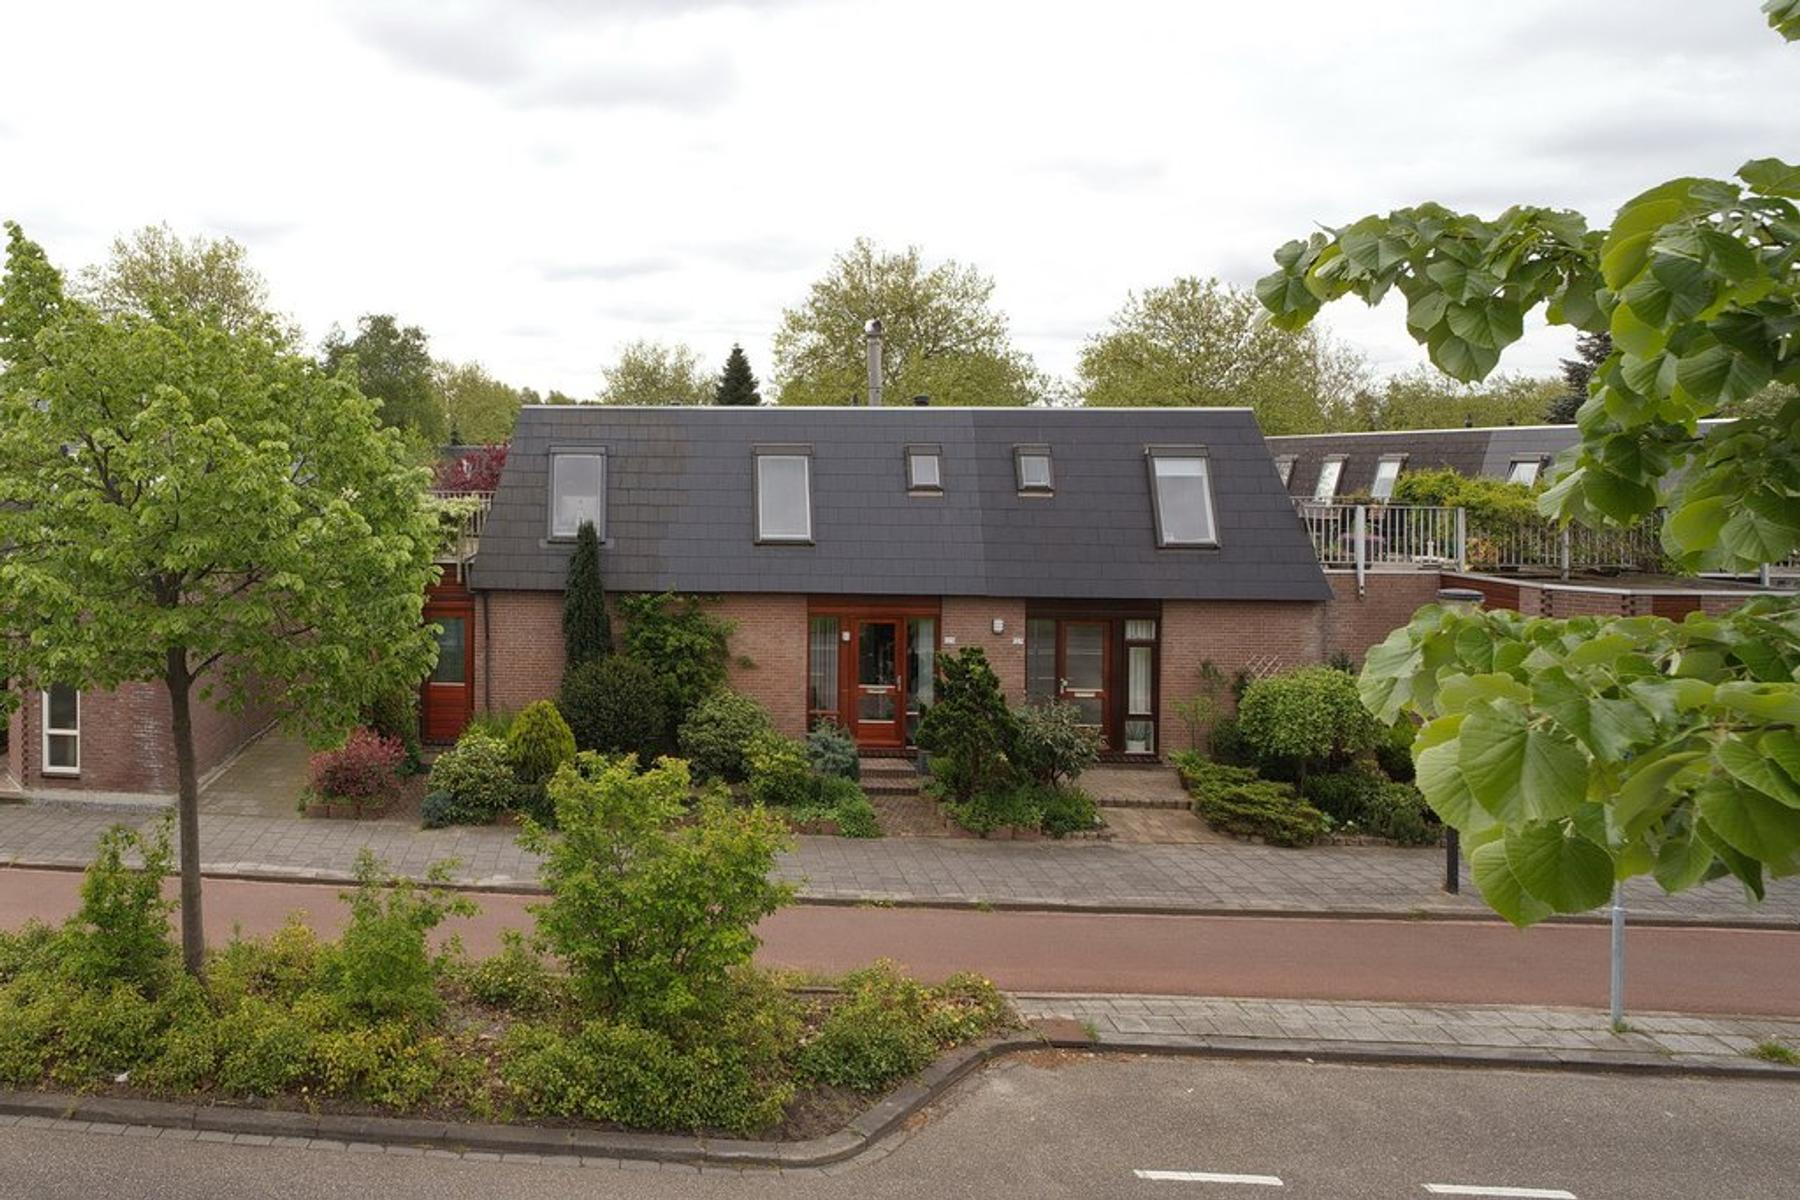 Olmendreef 125 in Vlaardingen 3137 CR